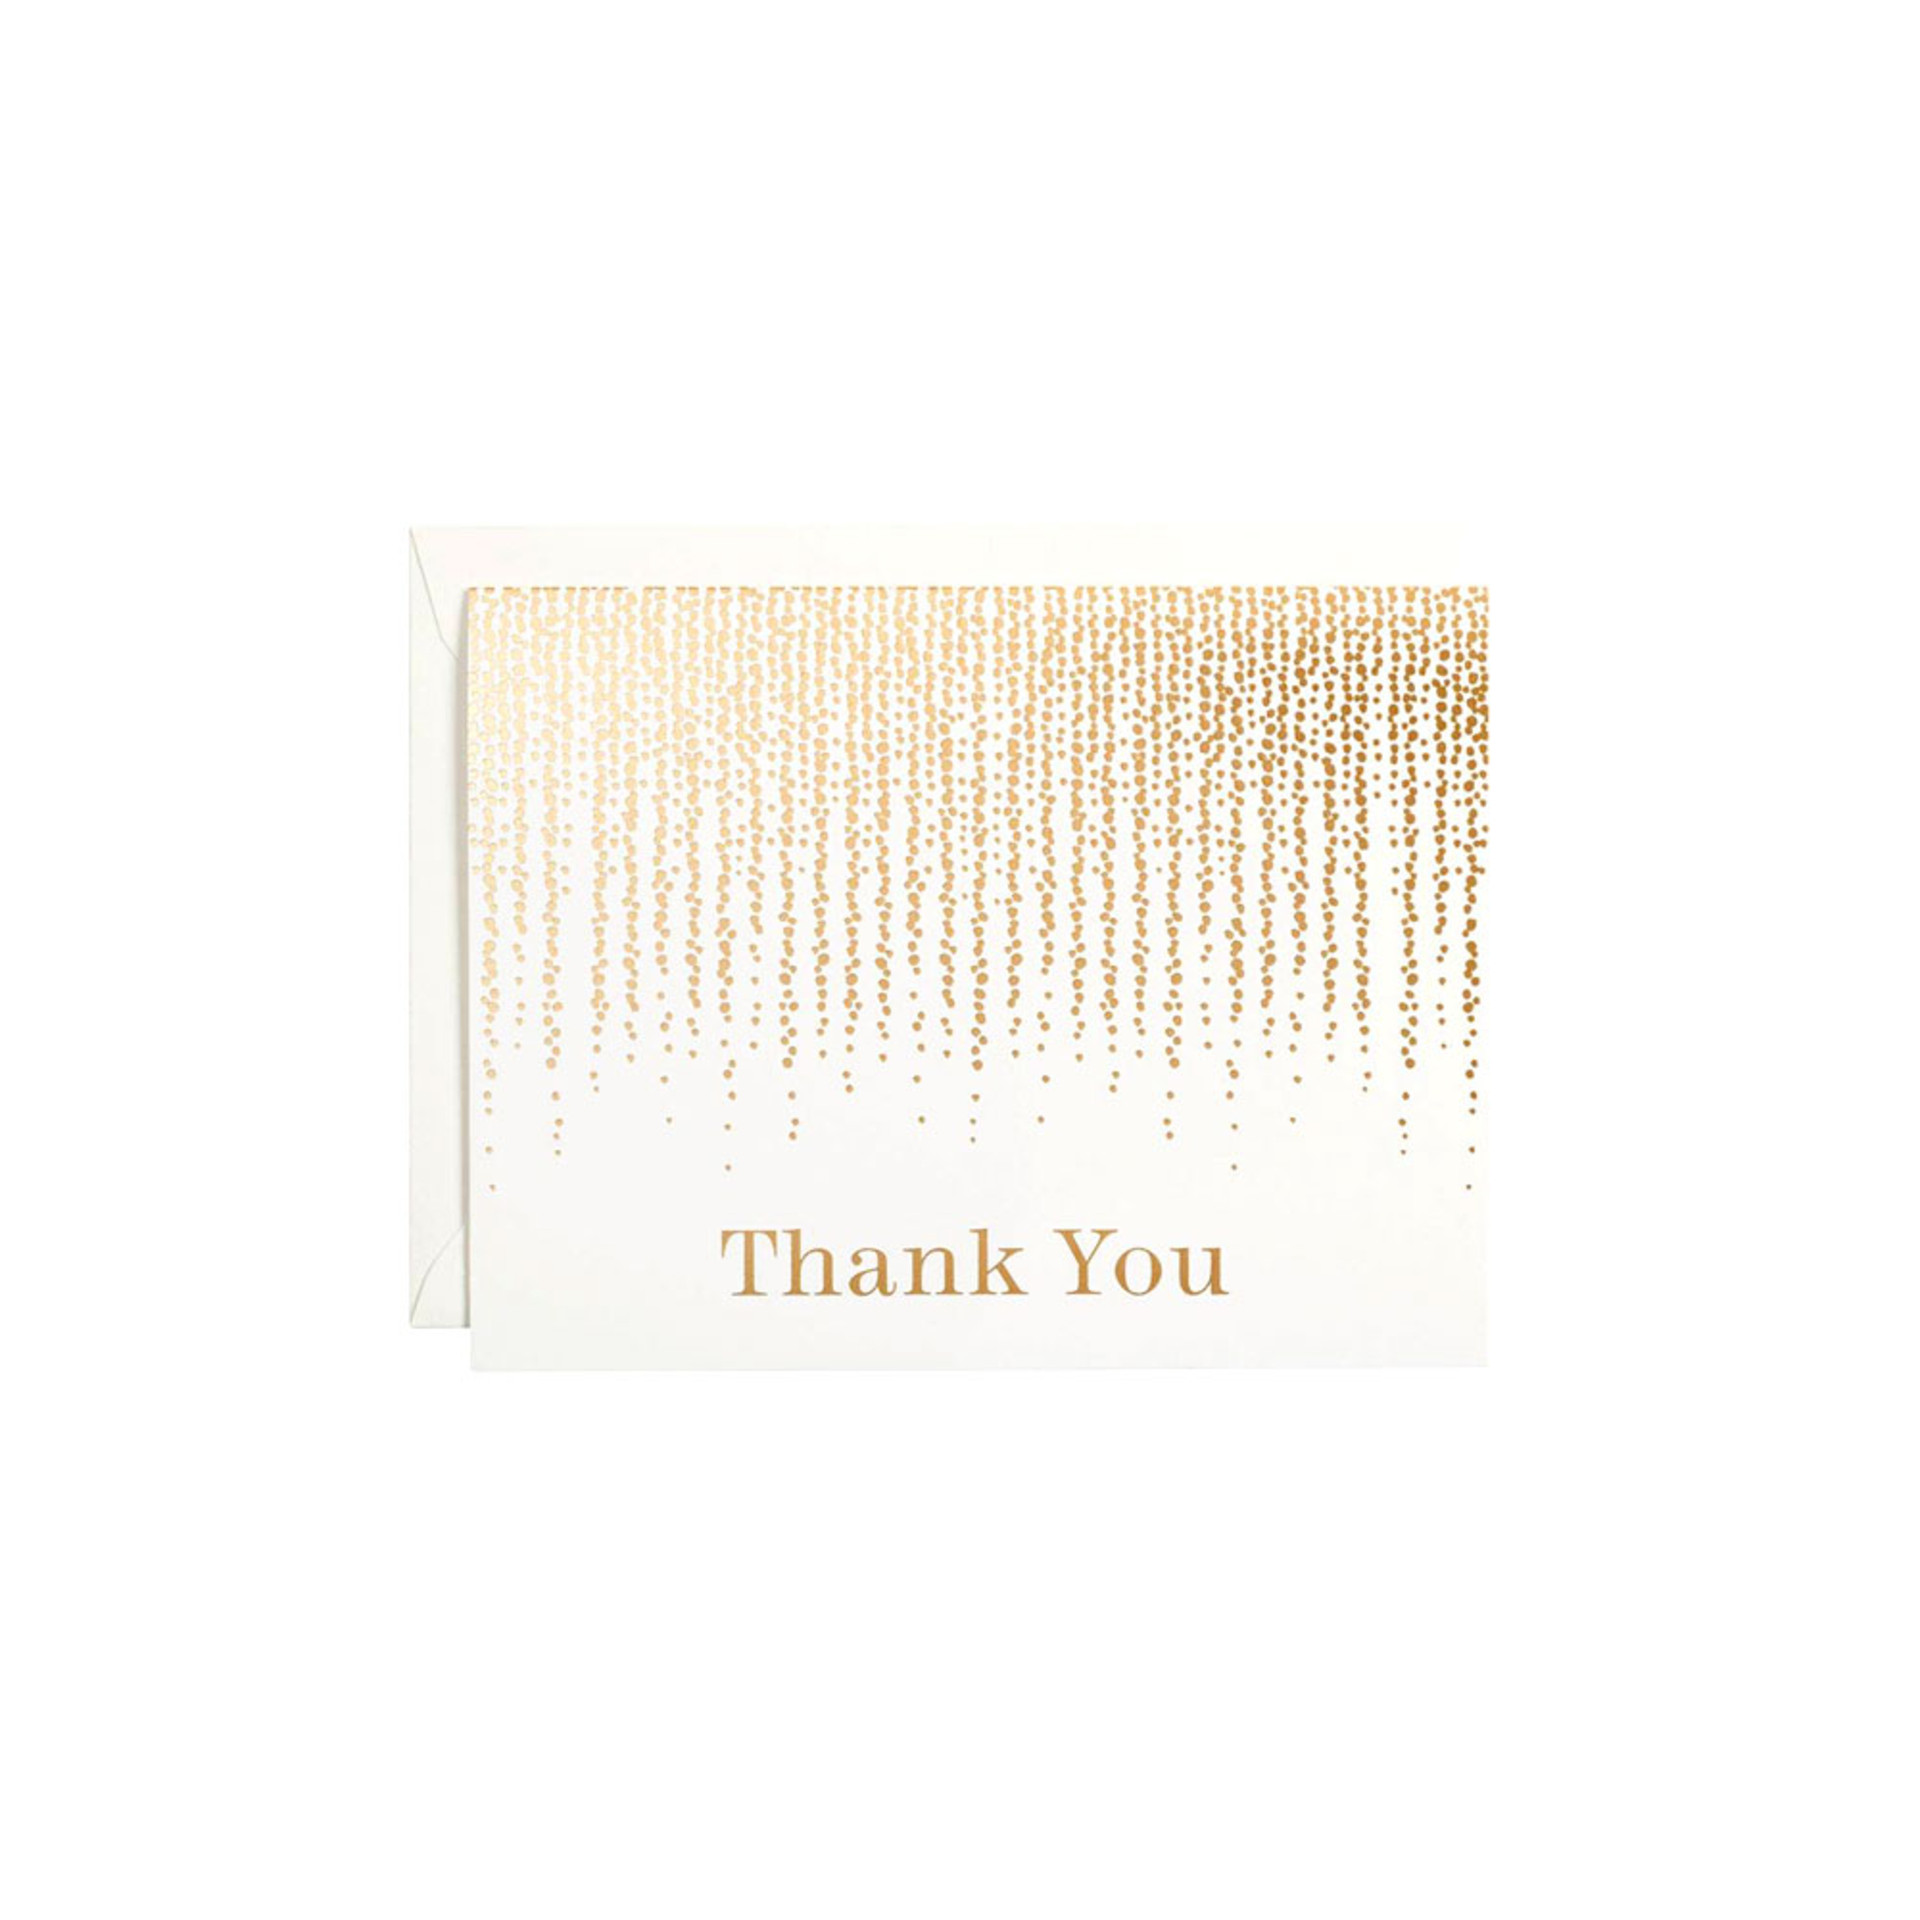 Waste Not Paper Chandelier Thank You Boxed Cards